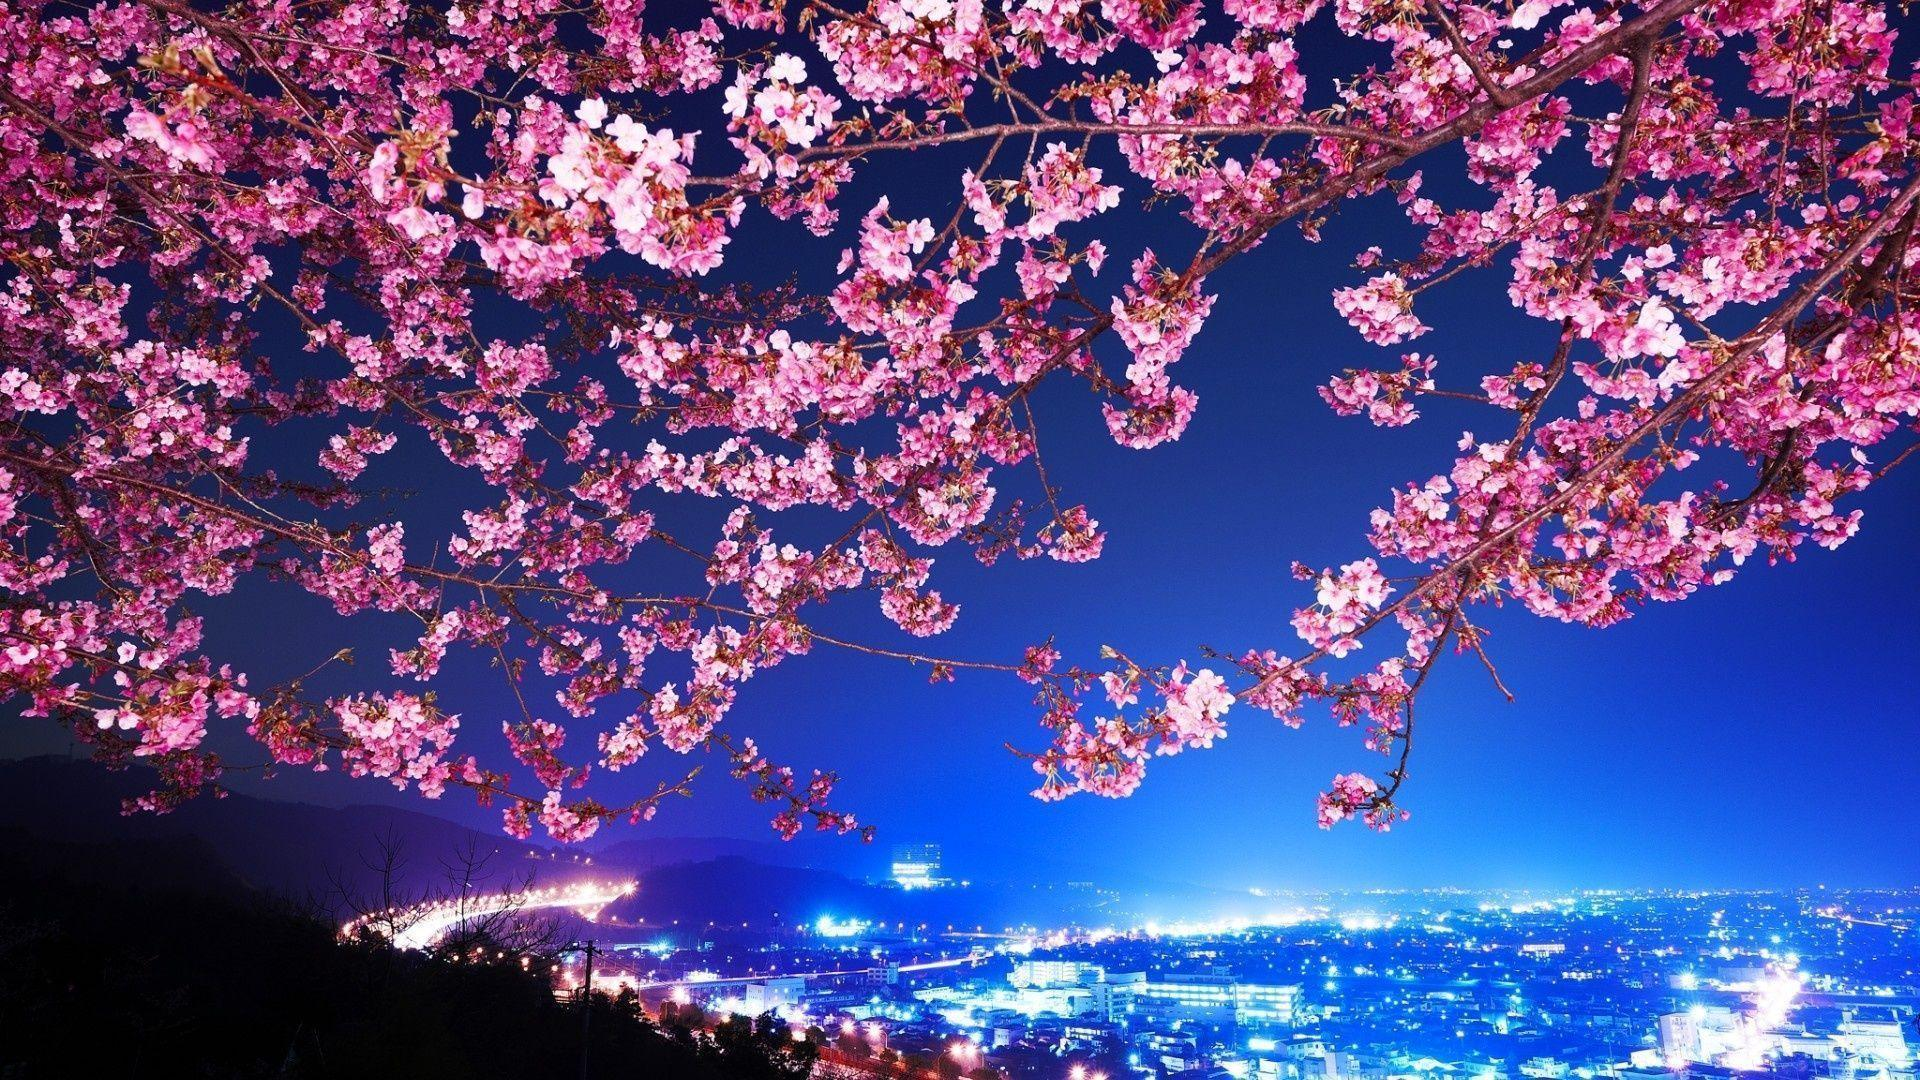 Hd Wallpapers Tags Cherry Blossom Tree With Path And Building ...